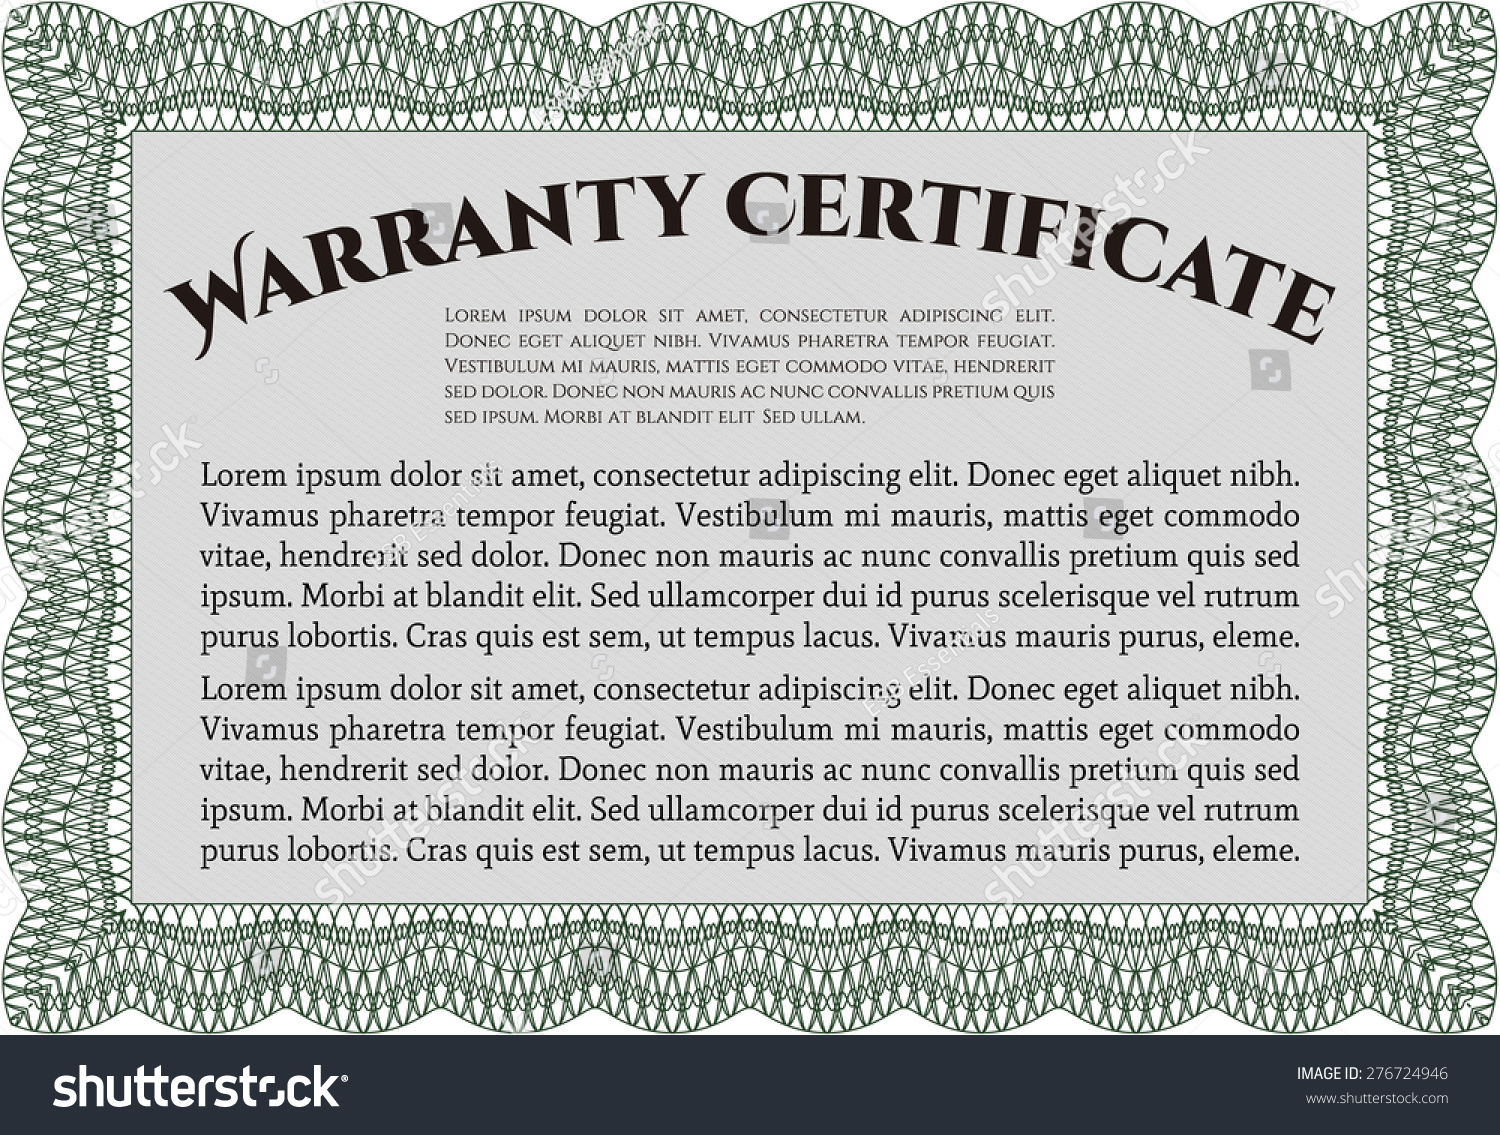 Warranty certificate template microsoft images certificate warranty certificate template microsoft image collections machine warranty certificate template gallery certificate design warranty certificate template xflitez Gallery